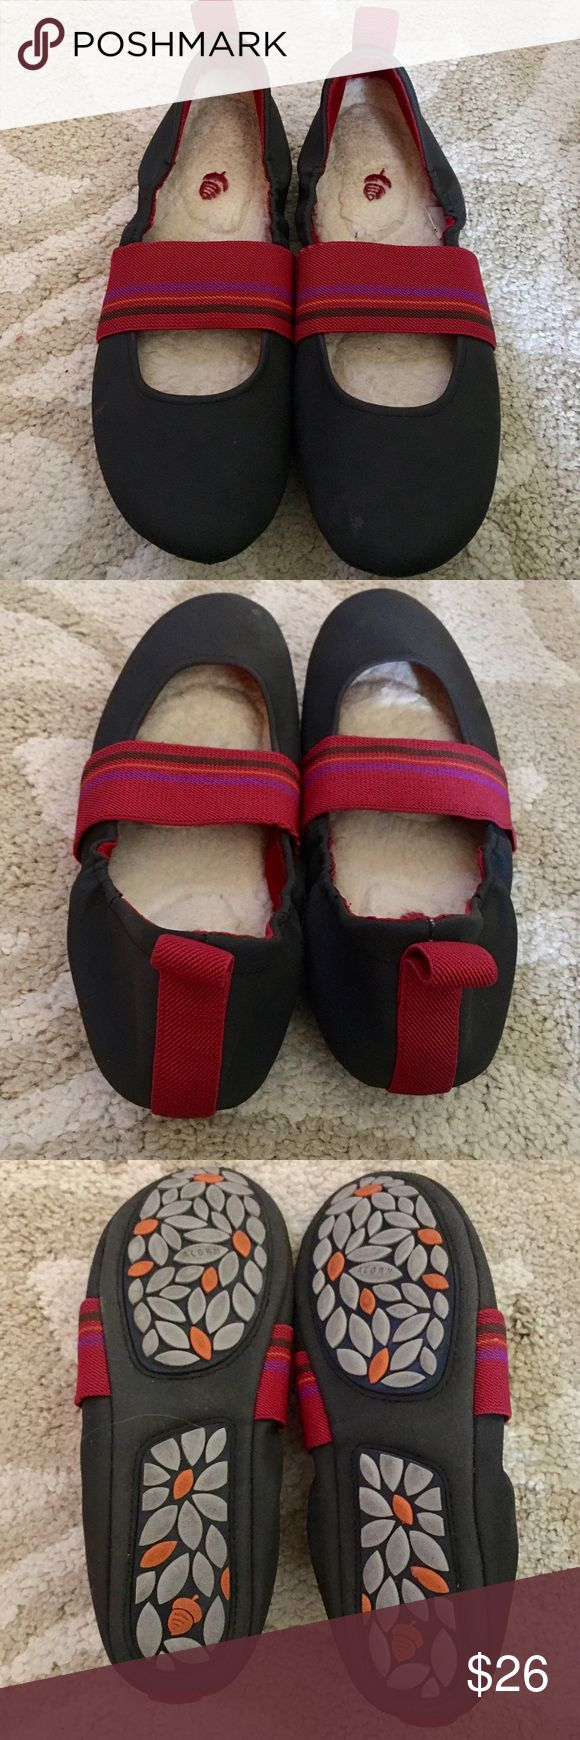 ACORN Slip On Ballerina Shoes Cute & adorable slip on shoes in dark smoke gray and a elastic strap. Inside is lined with wool. Bottom floral pattern. Very cute and perfect for wearing with skirt, pants or shorts. Looks awesome with jeggings. 👖 ACORN Shoes Slippers